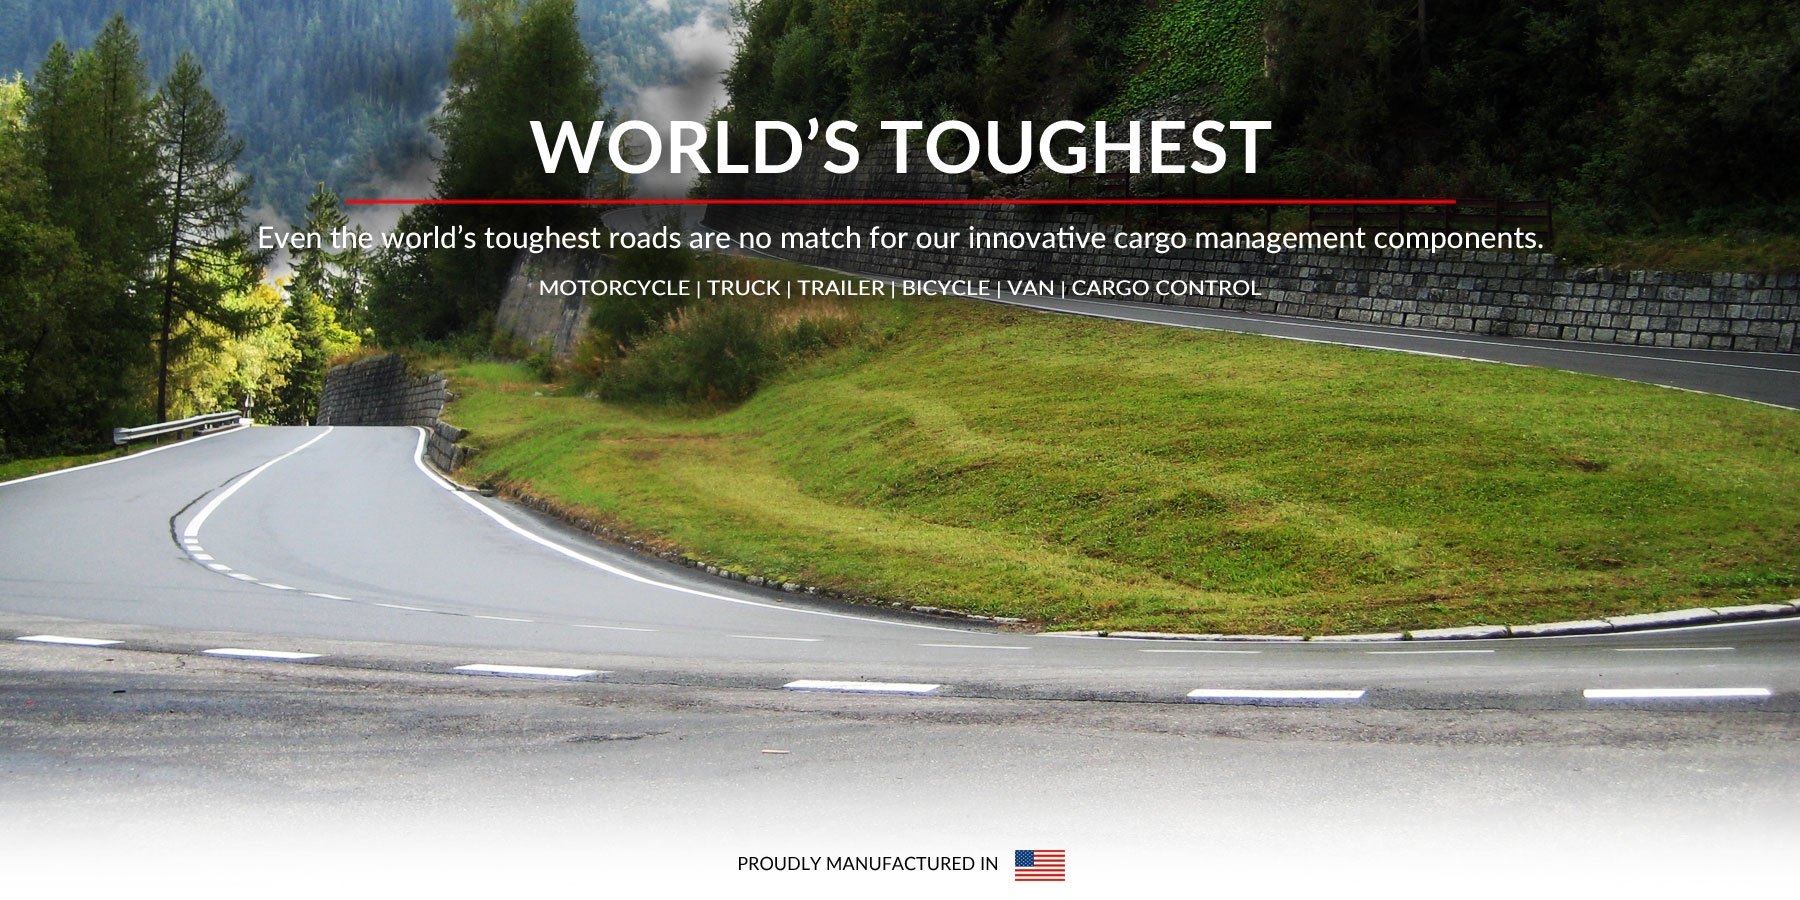 Even the world's toughest roads are no match for our innovative cargo management components.